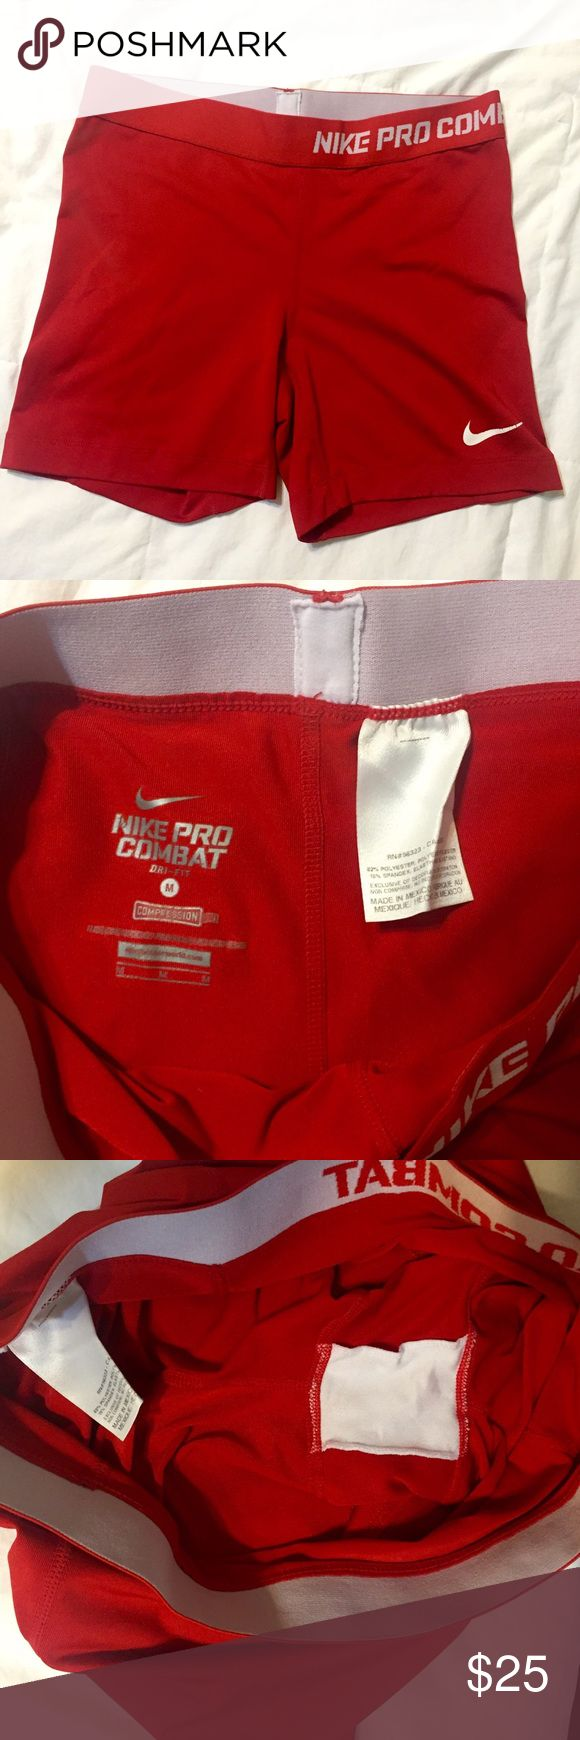 """Red 5"""" Nike Pro Combat Shorts I believe they're 5"""", because they're longer than the 2.5"""" combat shorts I own. Bought on here, great condition. Nike Shorts"""